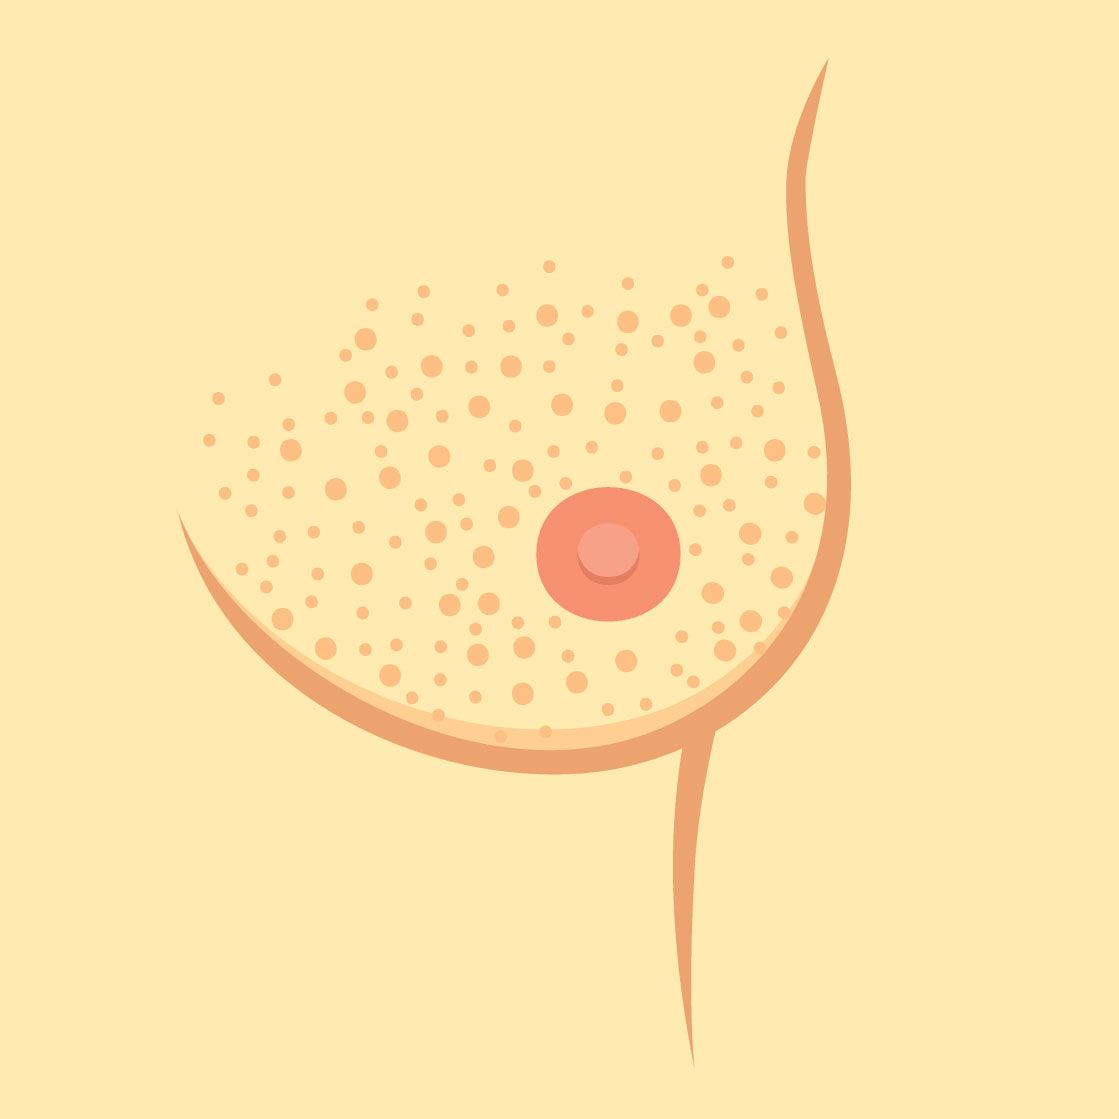 Breast Texture changes